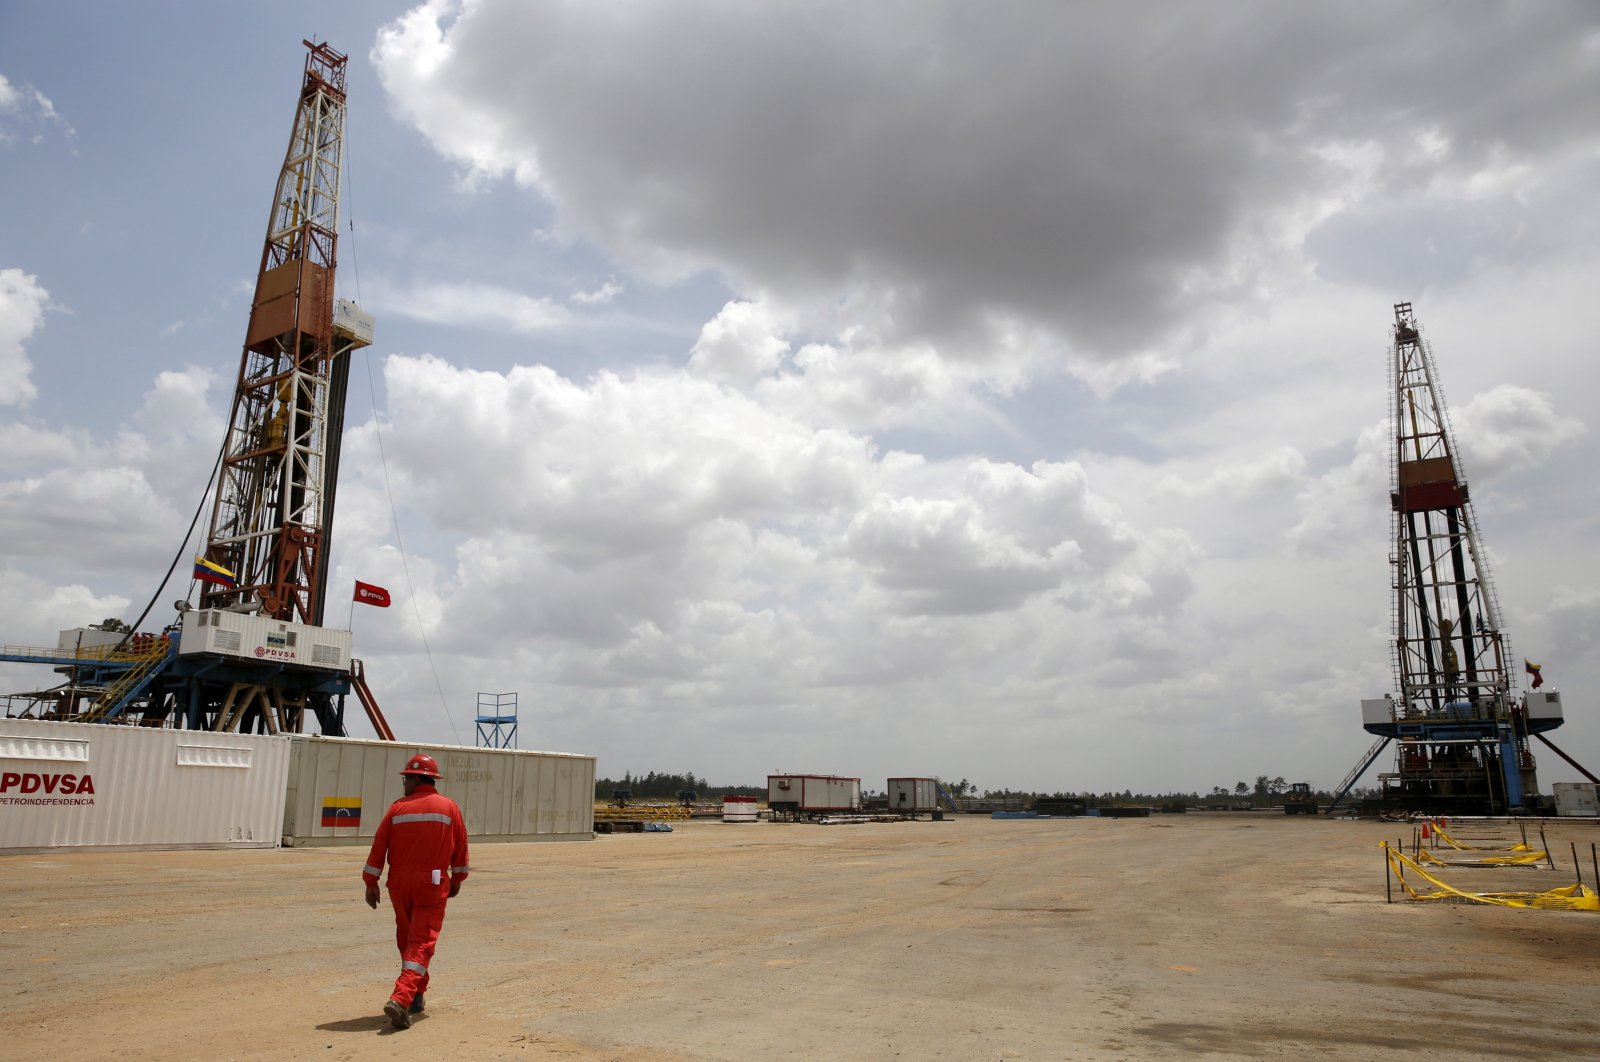 An oilfield worker walks next to drilling rigs at an oil well operated by Venezuela's state oil company PDVSA, in the oil-rich Orinoco belt, Venezeula, April 16, 2015. (Reuters Photo)